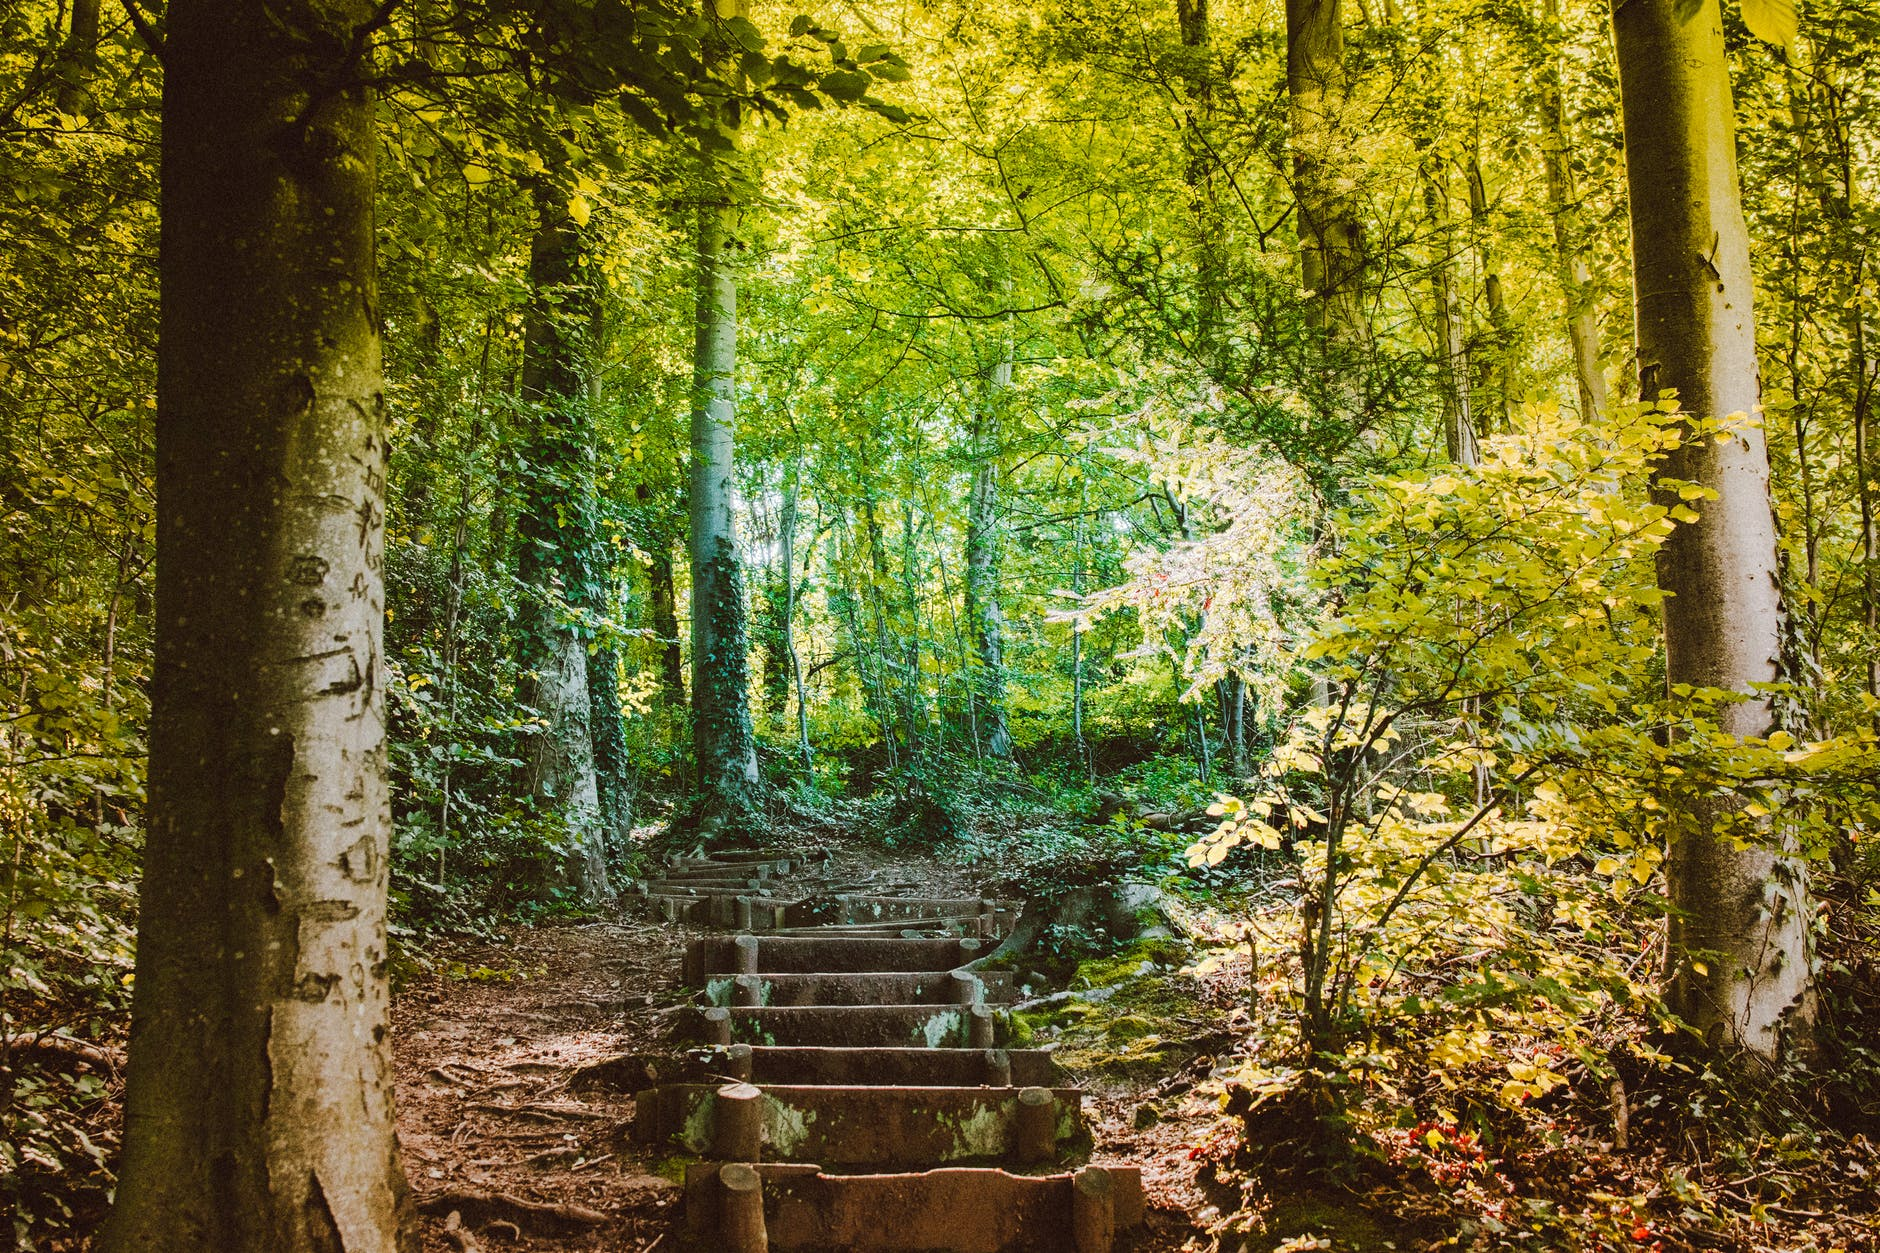 forest with concrete steps